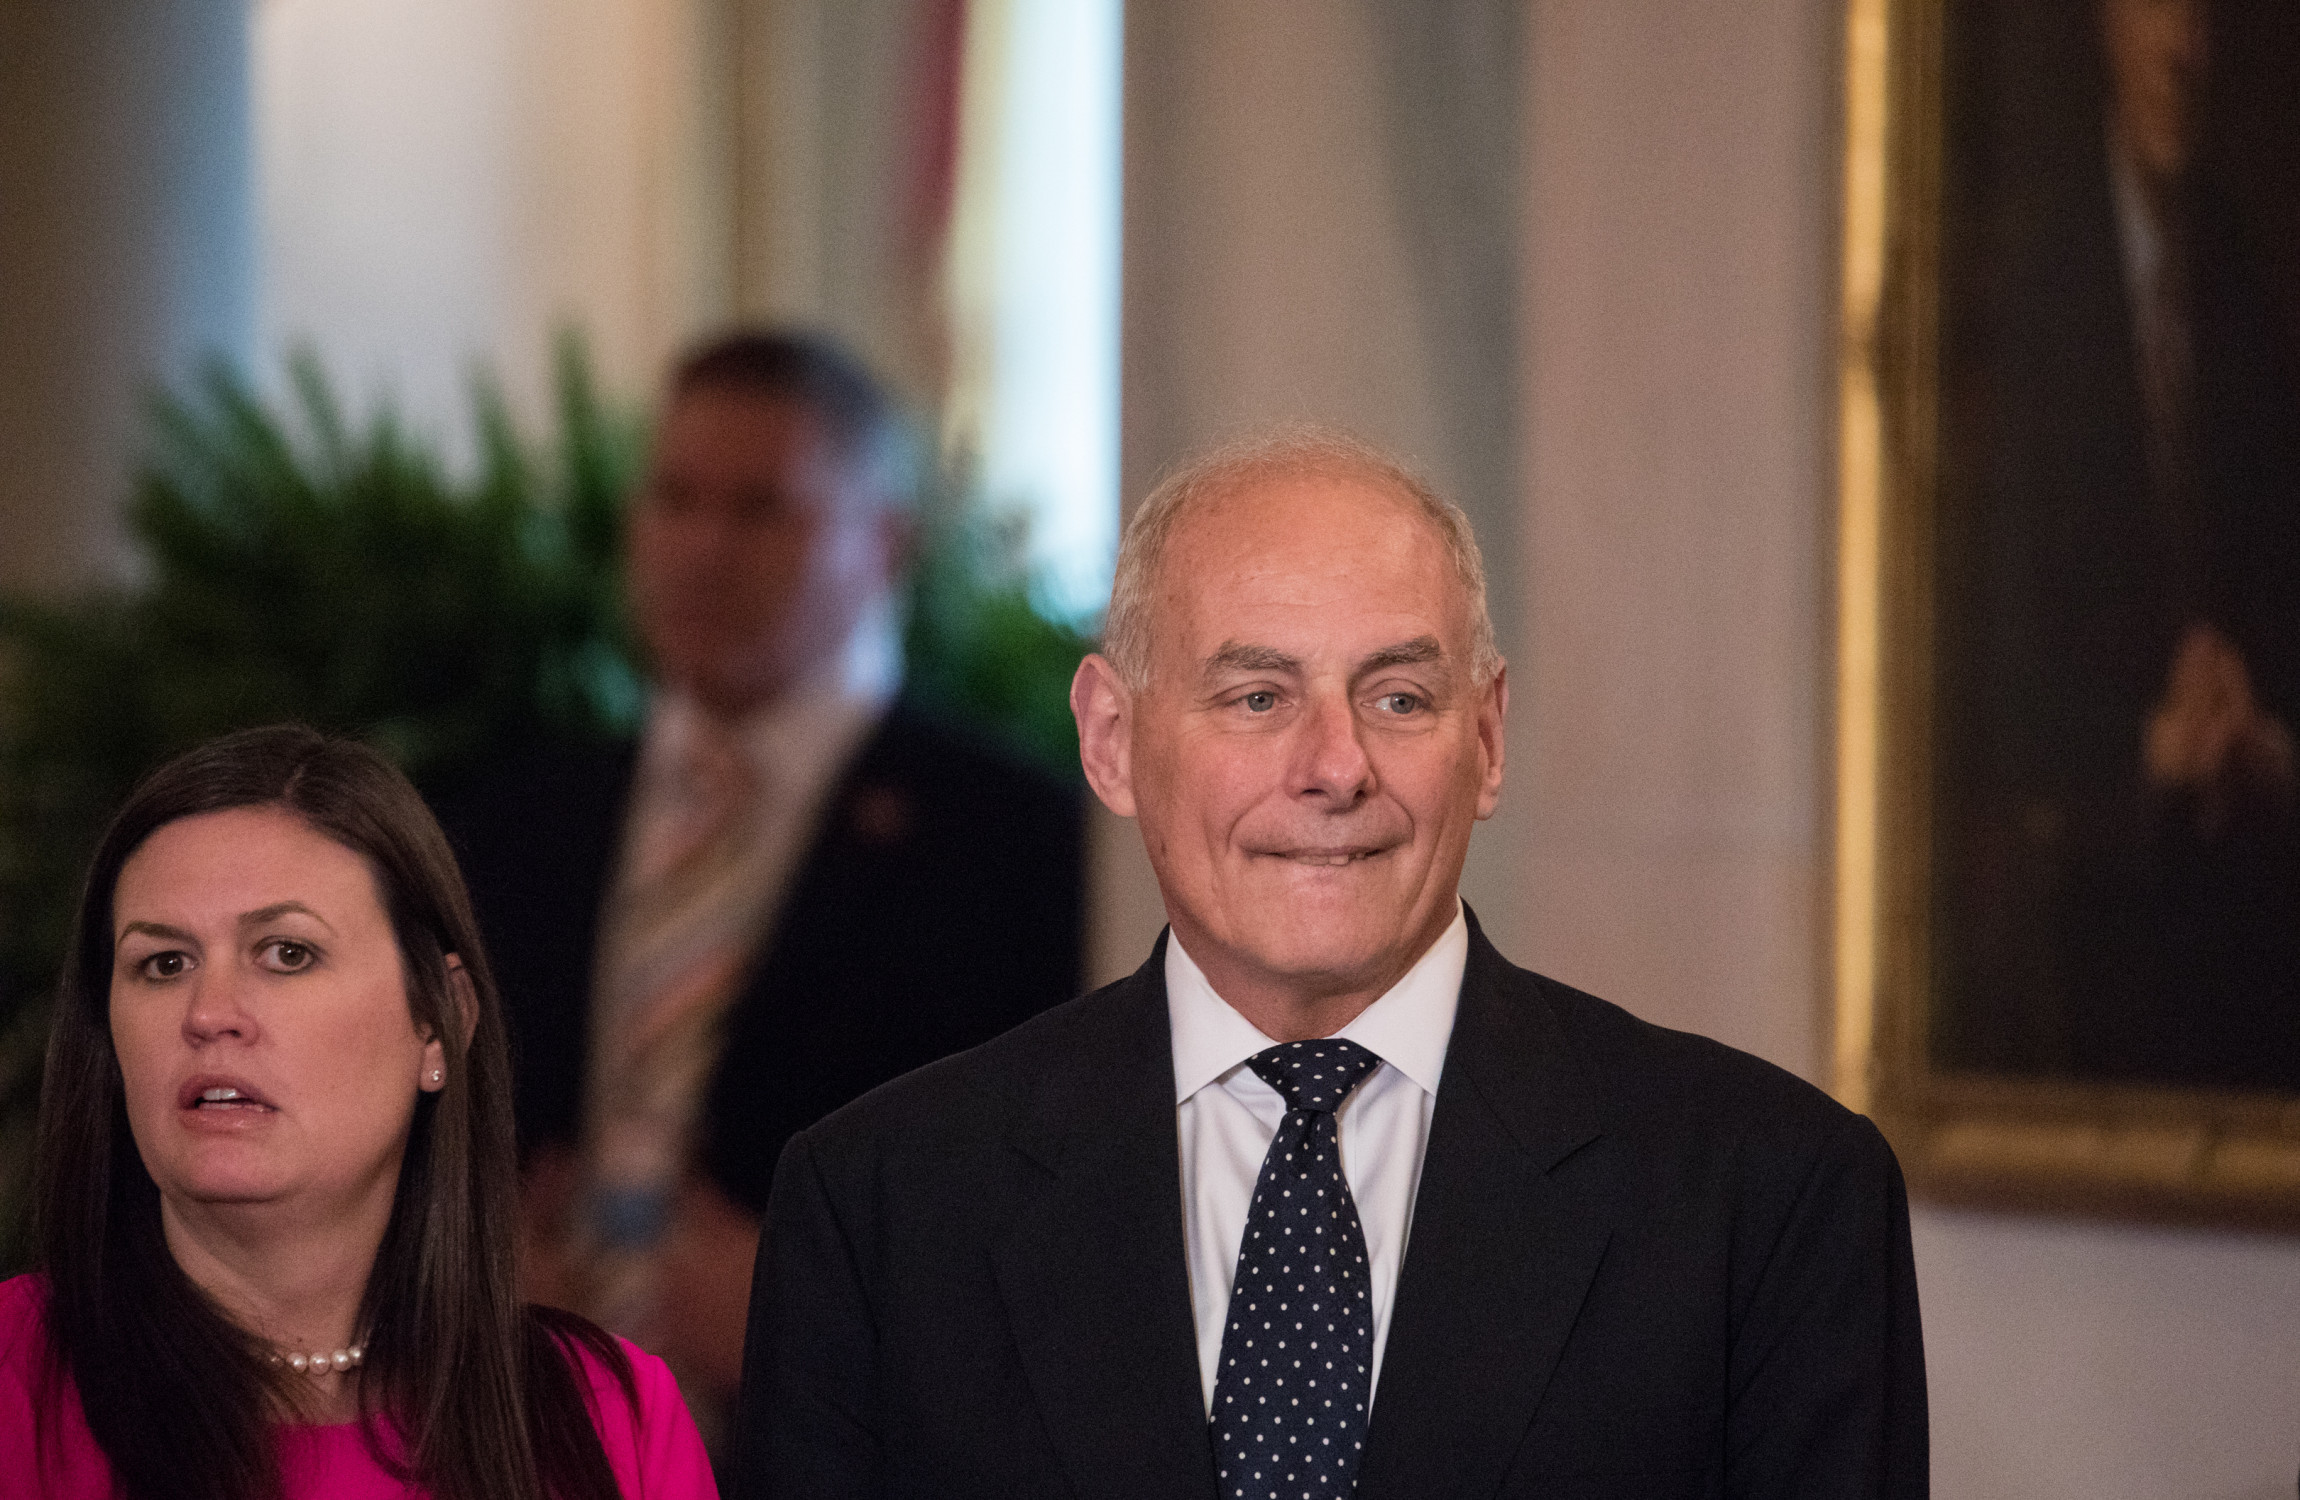 John Kelly to Reporters: 'I'm Not Quitting, I'm Not Getting Fired'